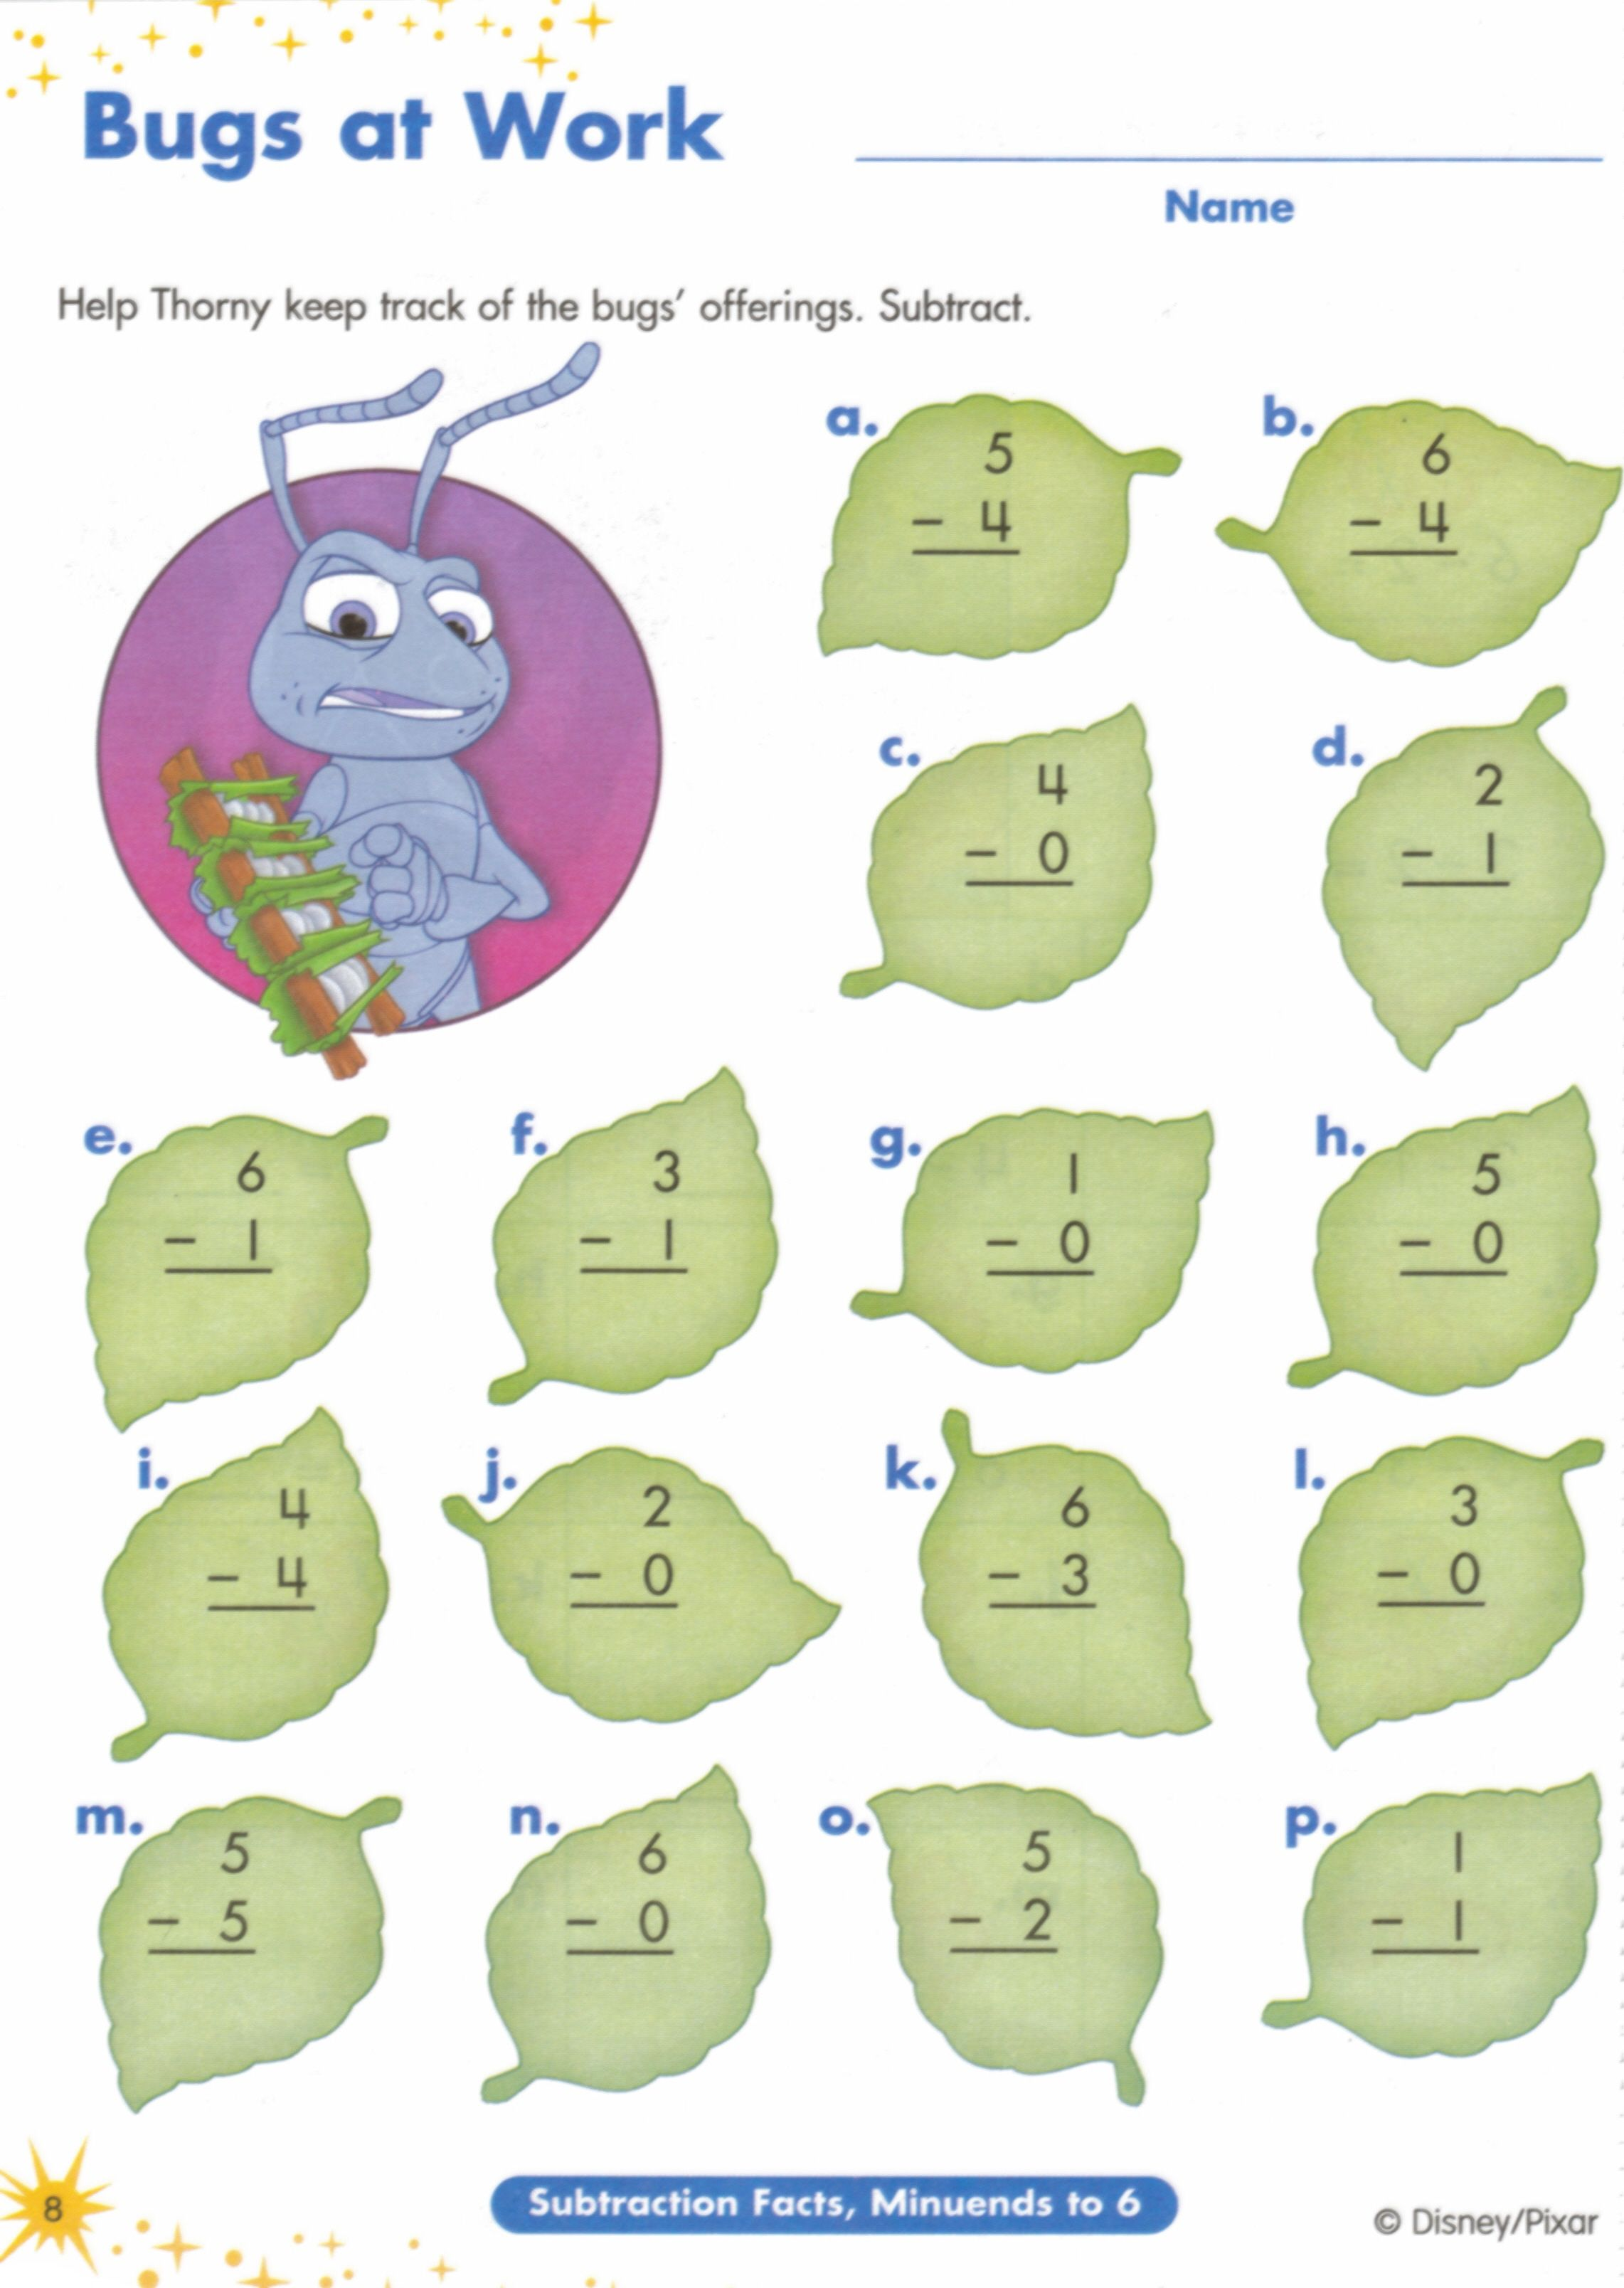 Proatmealus  Surprising  Images About Worksheets On Pinterest  Fun Facts For Kids  With Magnificent  Images About Worksheets On Pinterest  Fun Facts For Kids Earth Day Worksheets And Jungles With Extraordinary Rd Grade Maths Worksheets Also Math Worksheets Super Teacher In Addition Math Worksheets Angles And Toddler Worksheets Printables As Well As Financial Worksheet Excel Additionally Letter H Worksheets For Preschoolers From Pinterestcom With Proatmealus  Magnificent  Images About Worksheets On Pinterest  Fun Facts For Kids  With Extraordinary  Images About Worksheets On Pinterest  Fun Facts For Kids Earth Day Worksheets And Jungles And Surprising Rd Grade Maths Worksheets Also Math Worksheets Super Teacher In Addition Math Worksheets Angles From Pinterestcom